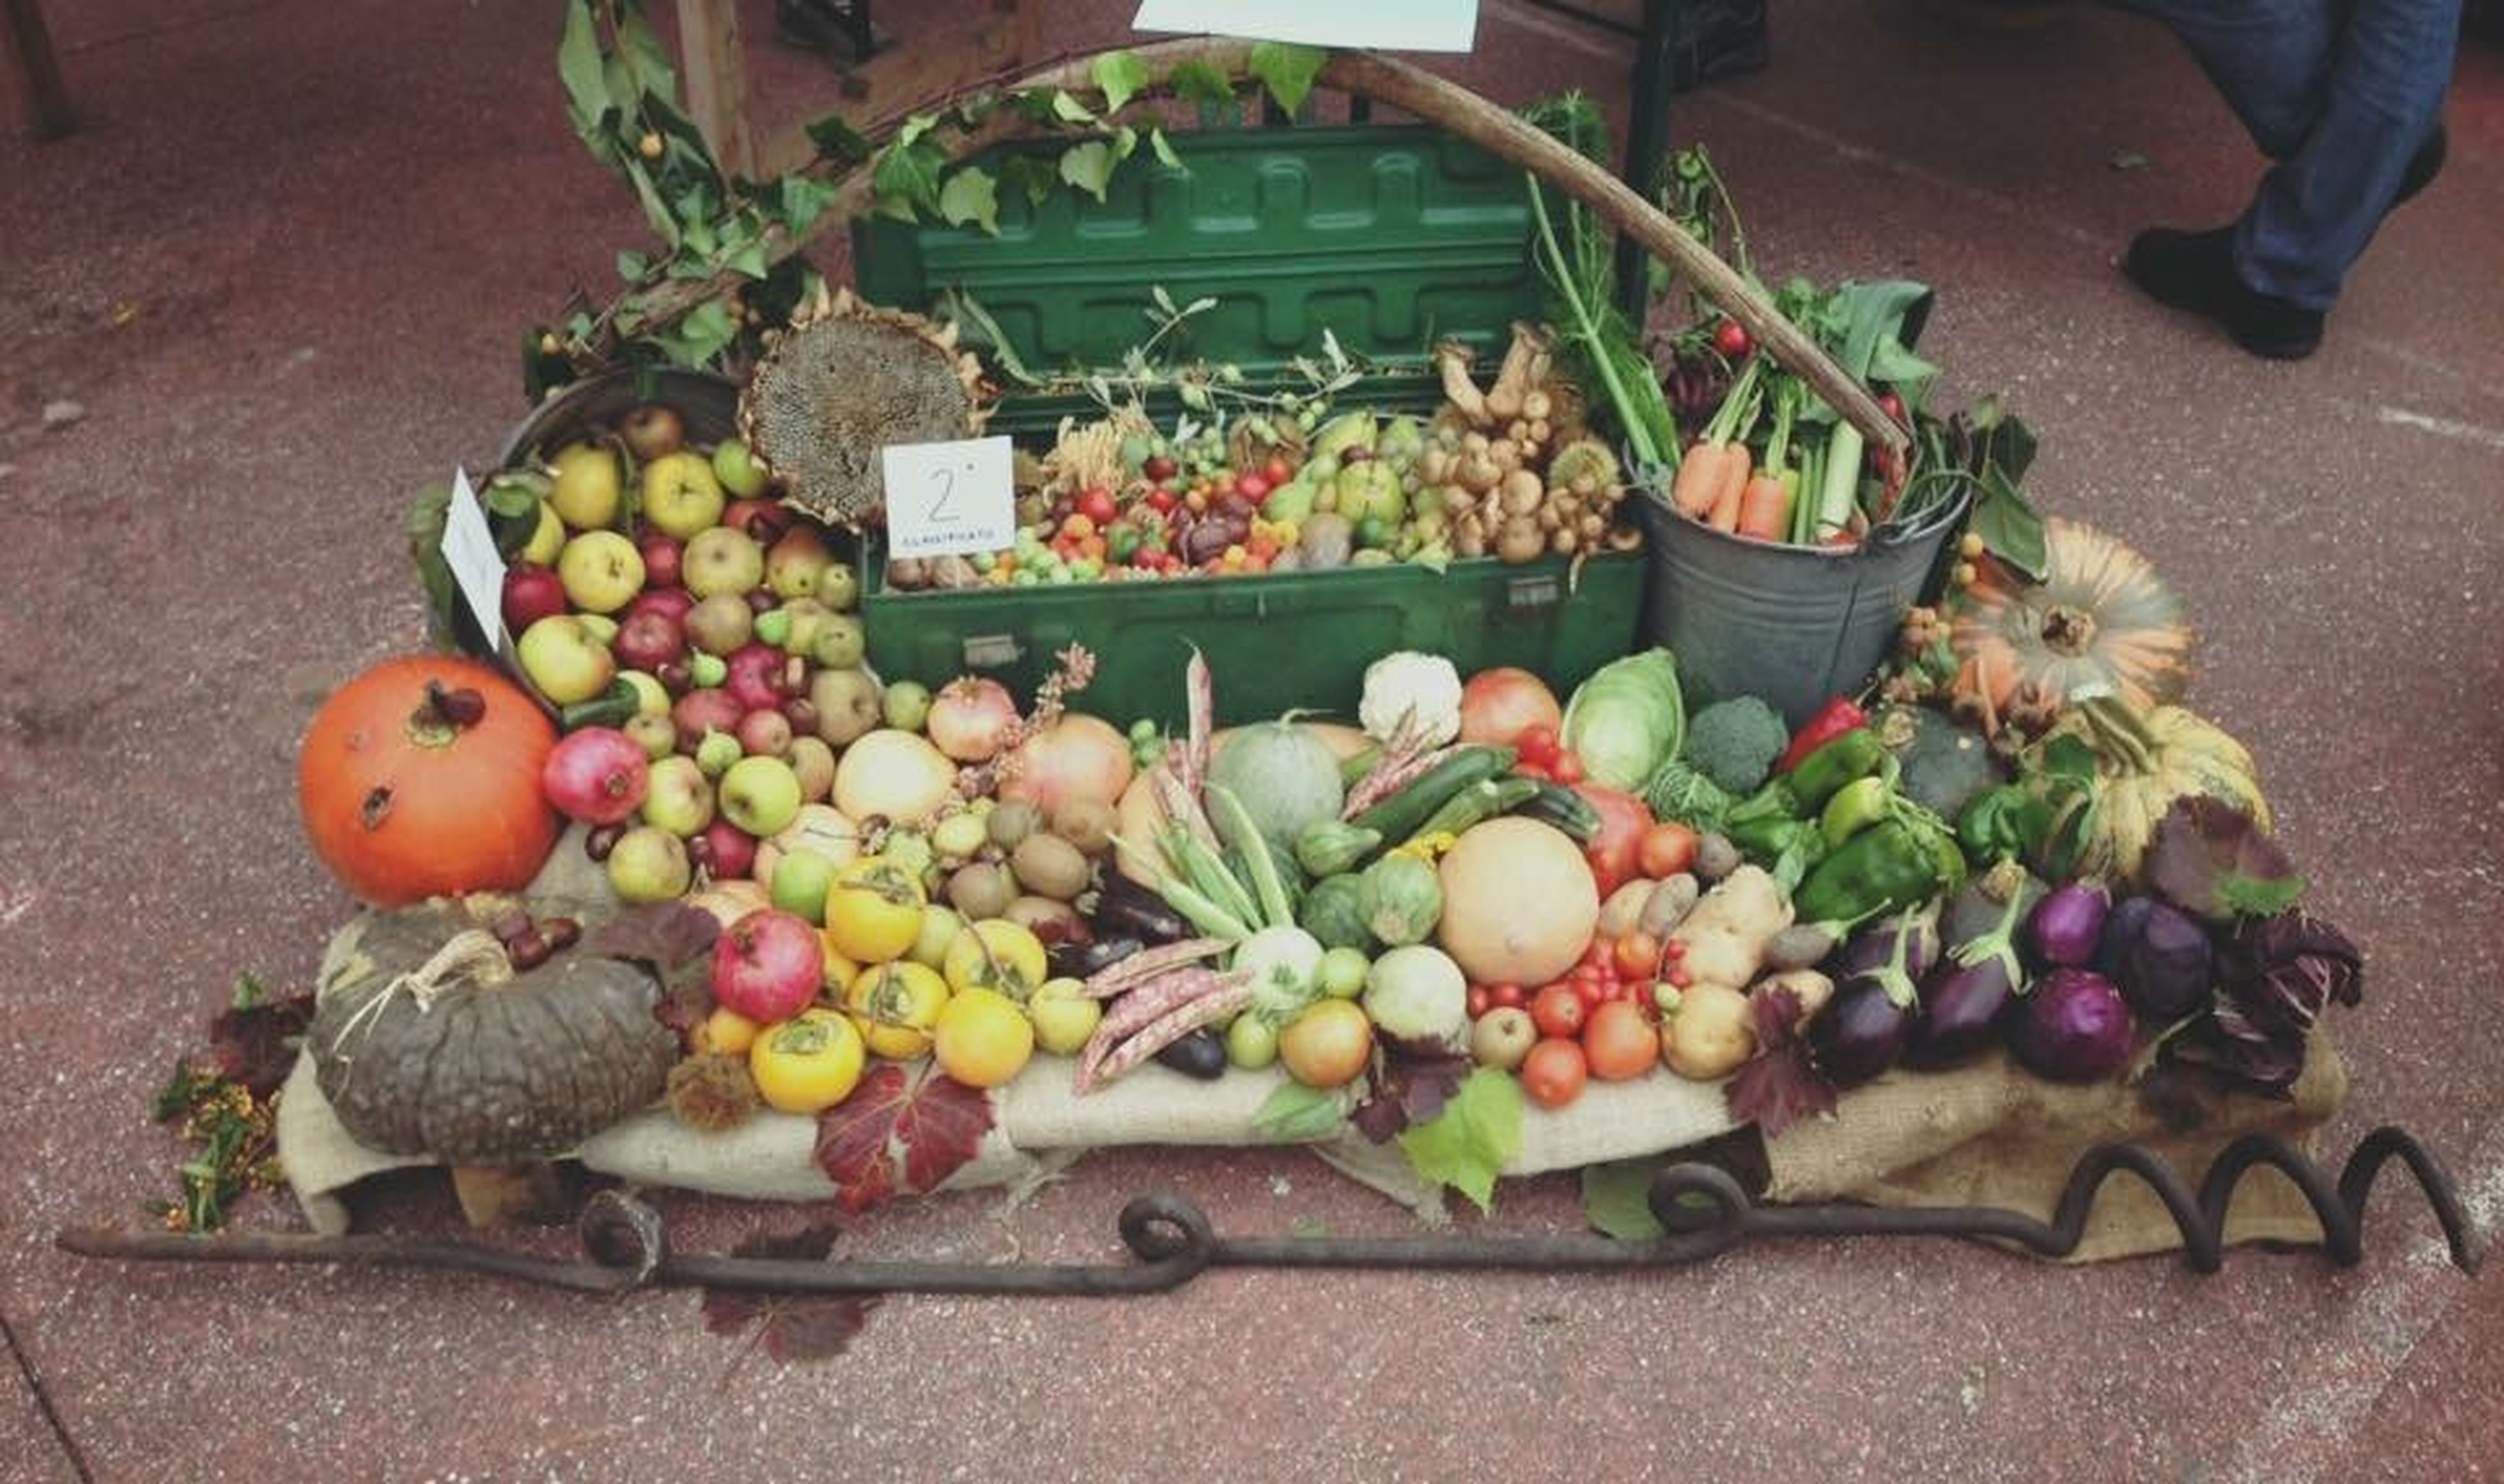 food and drink, food, healthy eating, freshness, fruit, vegetable, potted plant, high angle view, variation, table, basket, market, retail, plant, large group of objects, indoors, for sale, market stall, choice, leaf